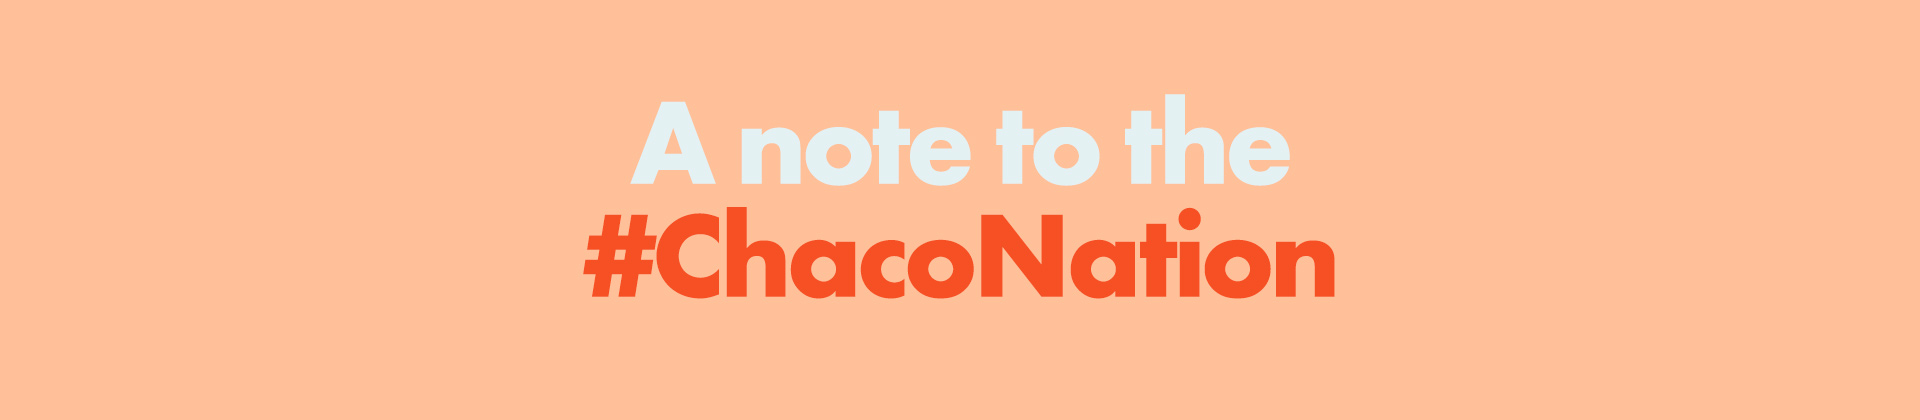 A note to the Chaco Nation.